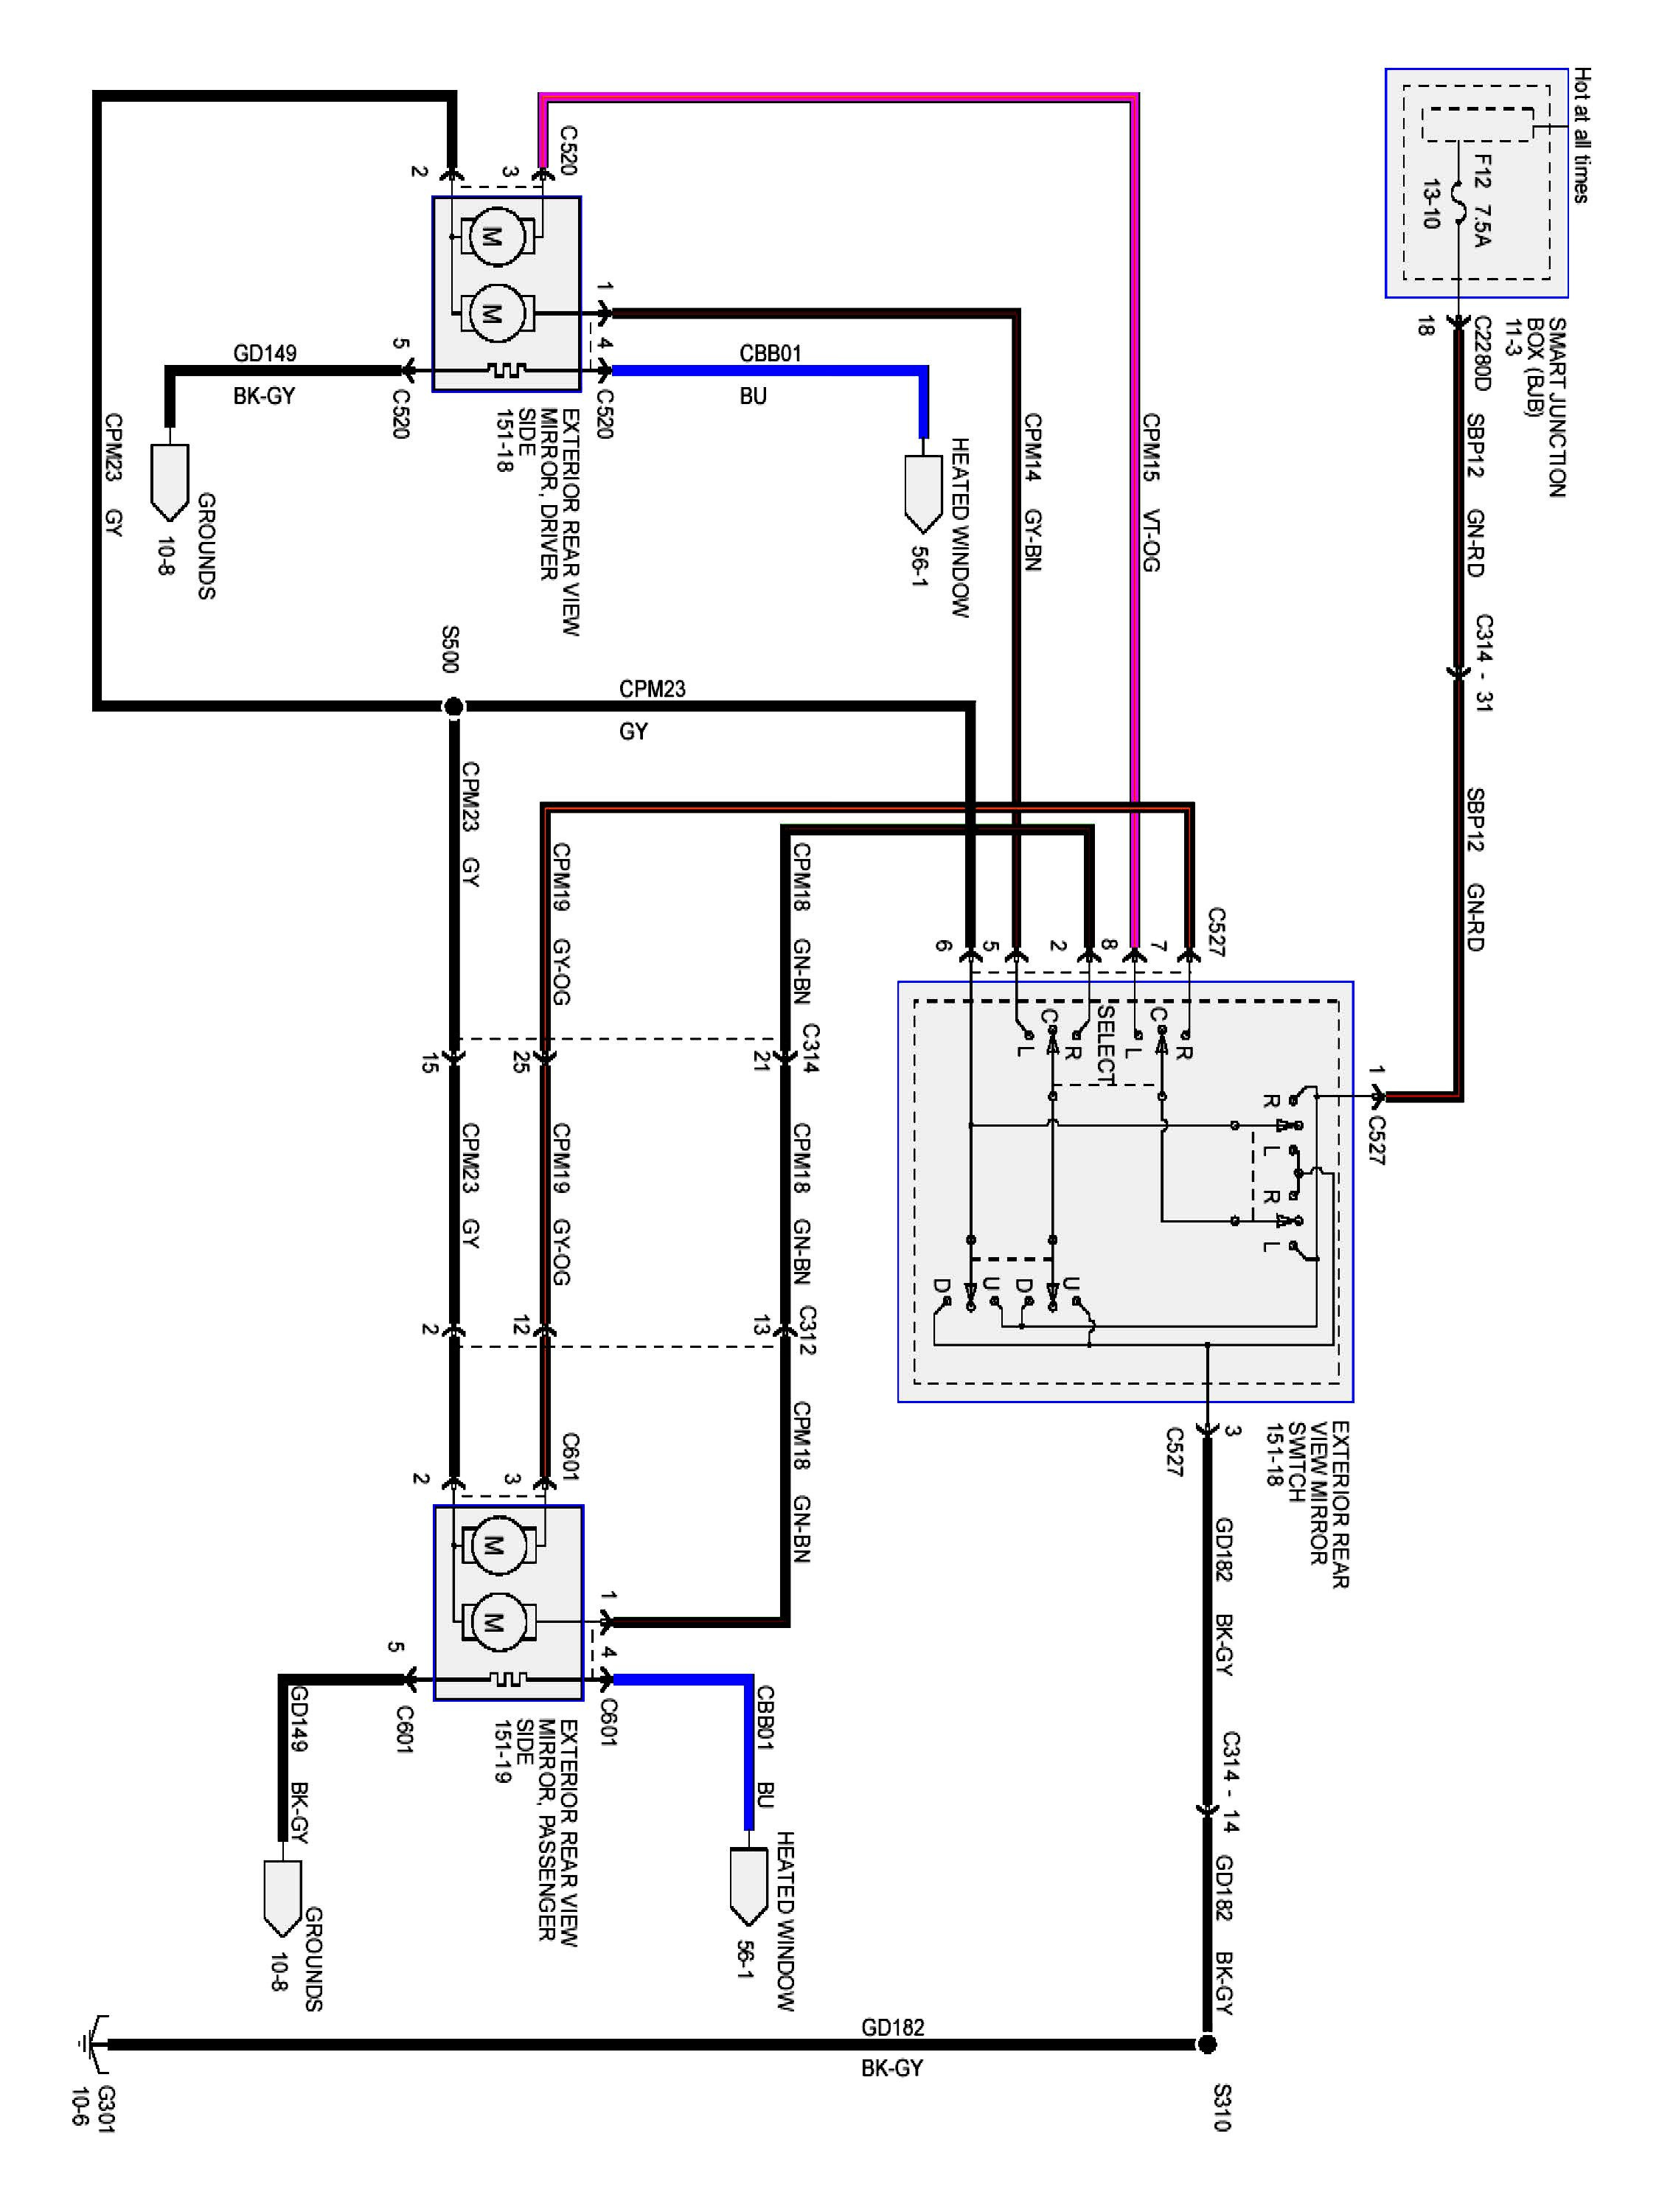 LC_8969] Mirrors For Ford Remote Wiring Diagram Schematic WiringAlma Genion Effl Inkl Cette Mohammedshrine Librar Wiring 101